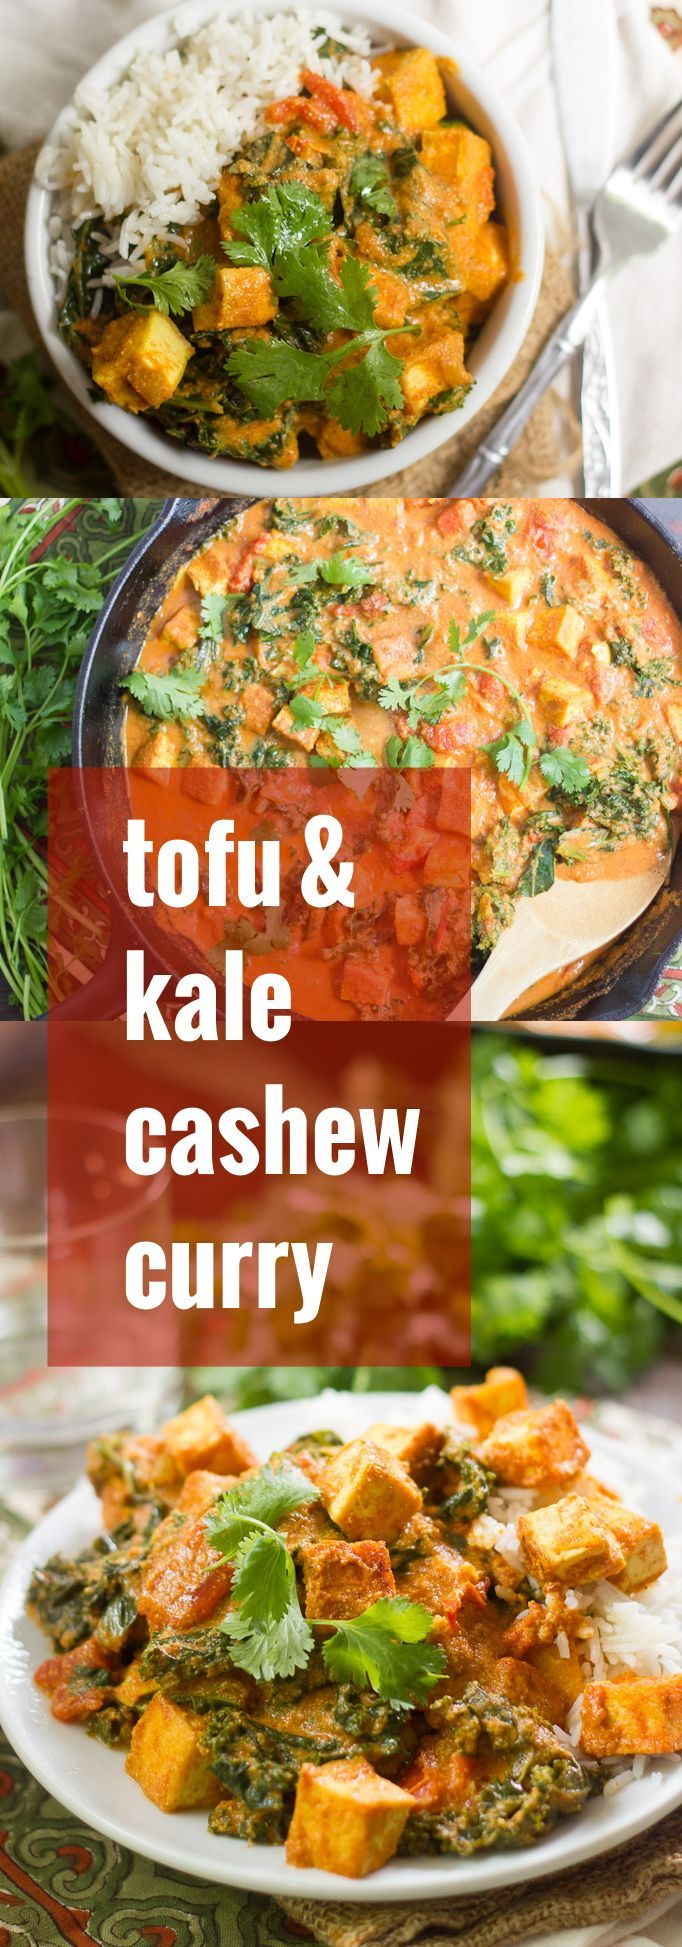 Pan-fried tofu and kale are simmered up in spicy, creamy cashew curry sauce and served up over rice in to make this hearty Indian-inspired stew.